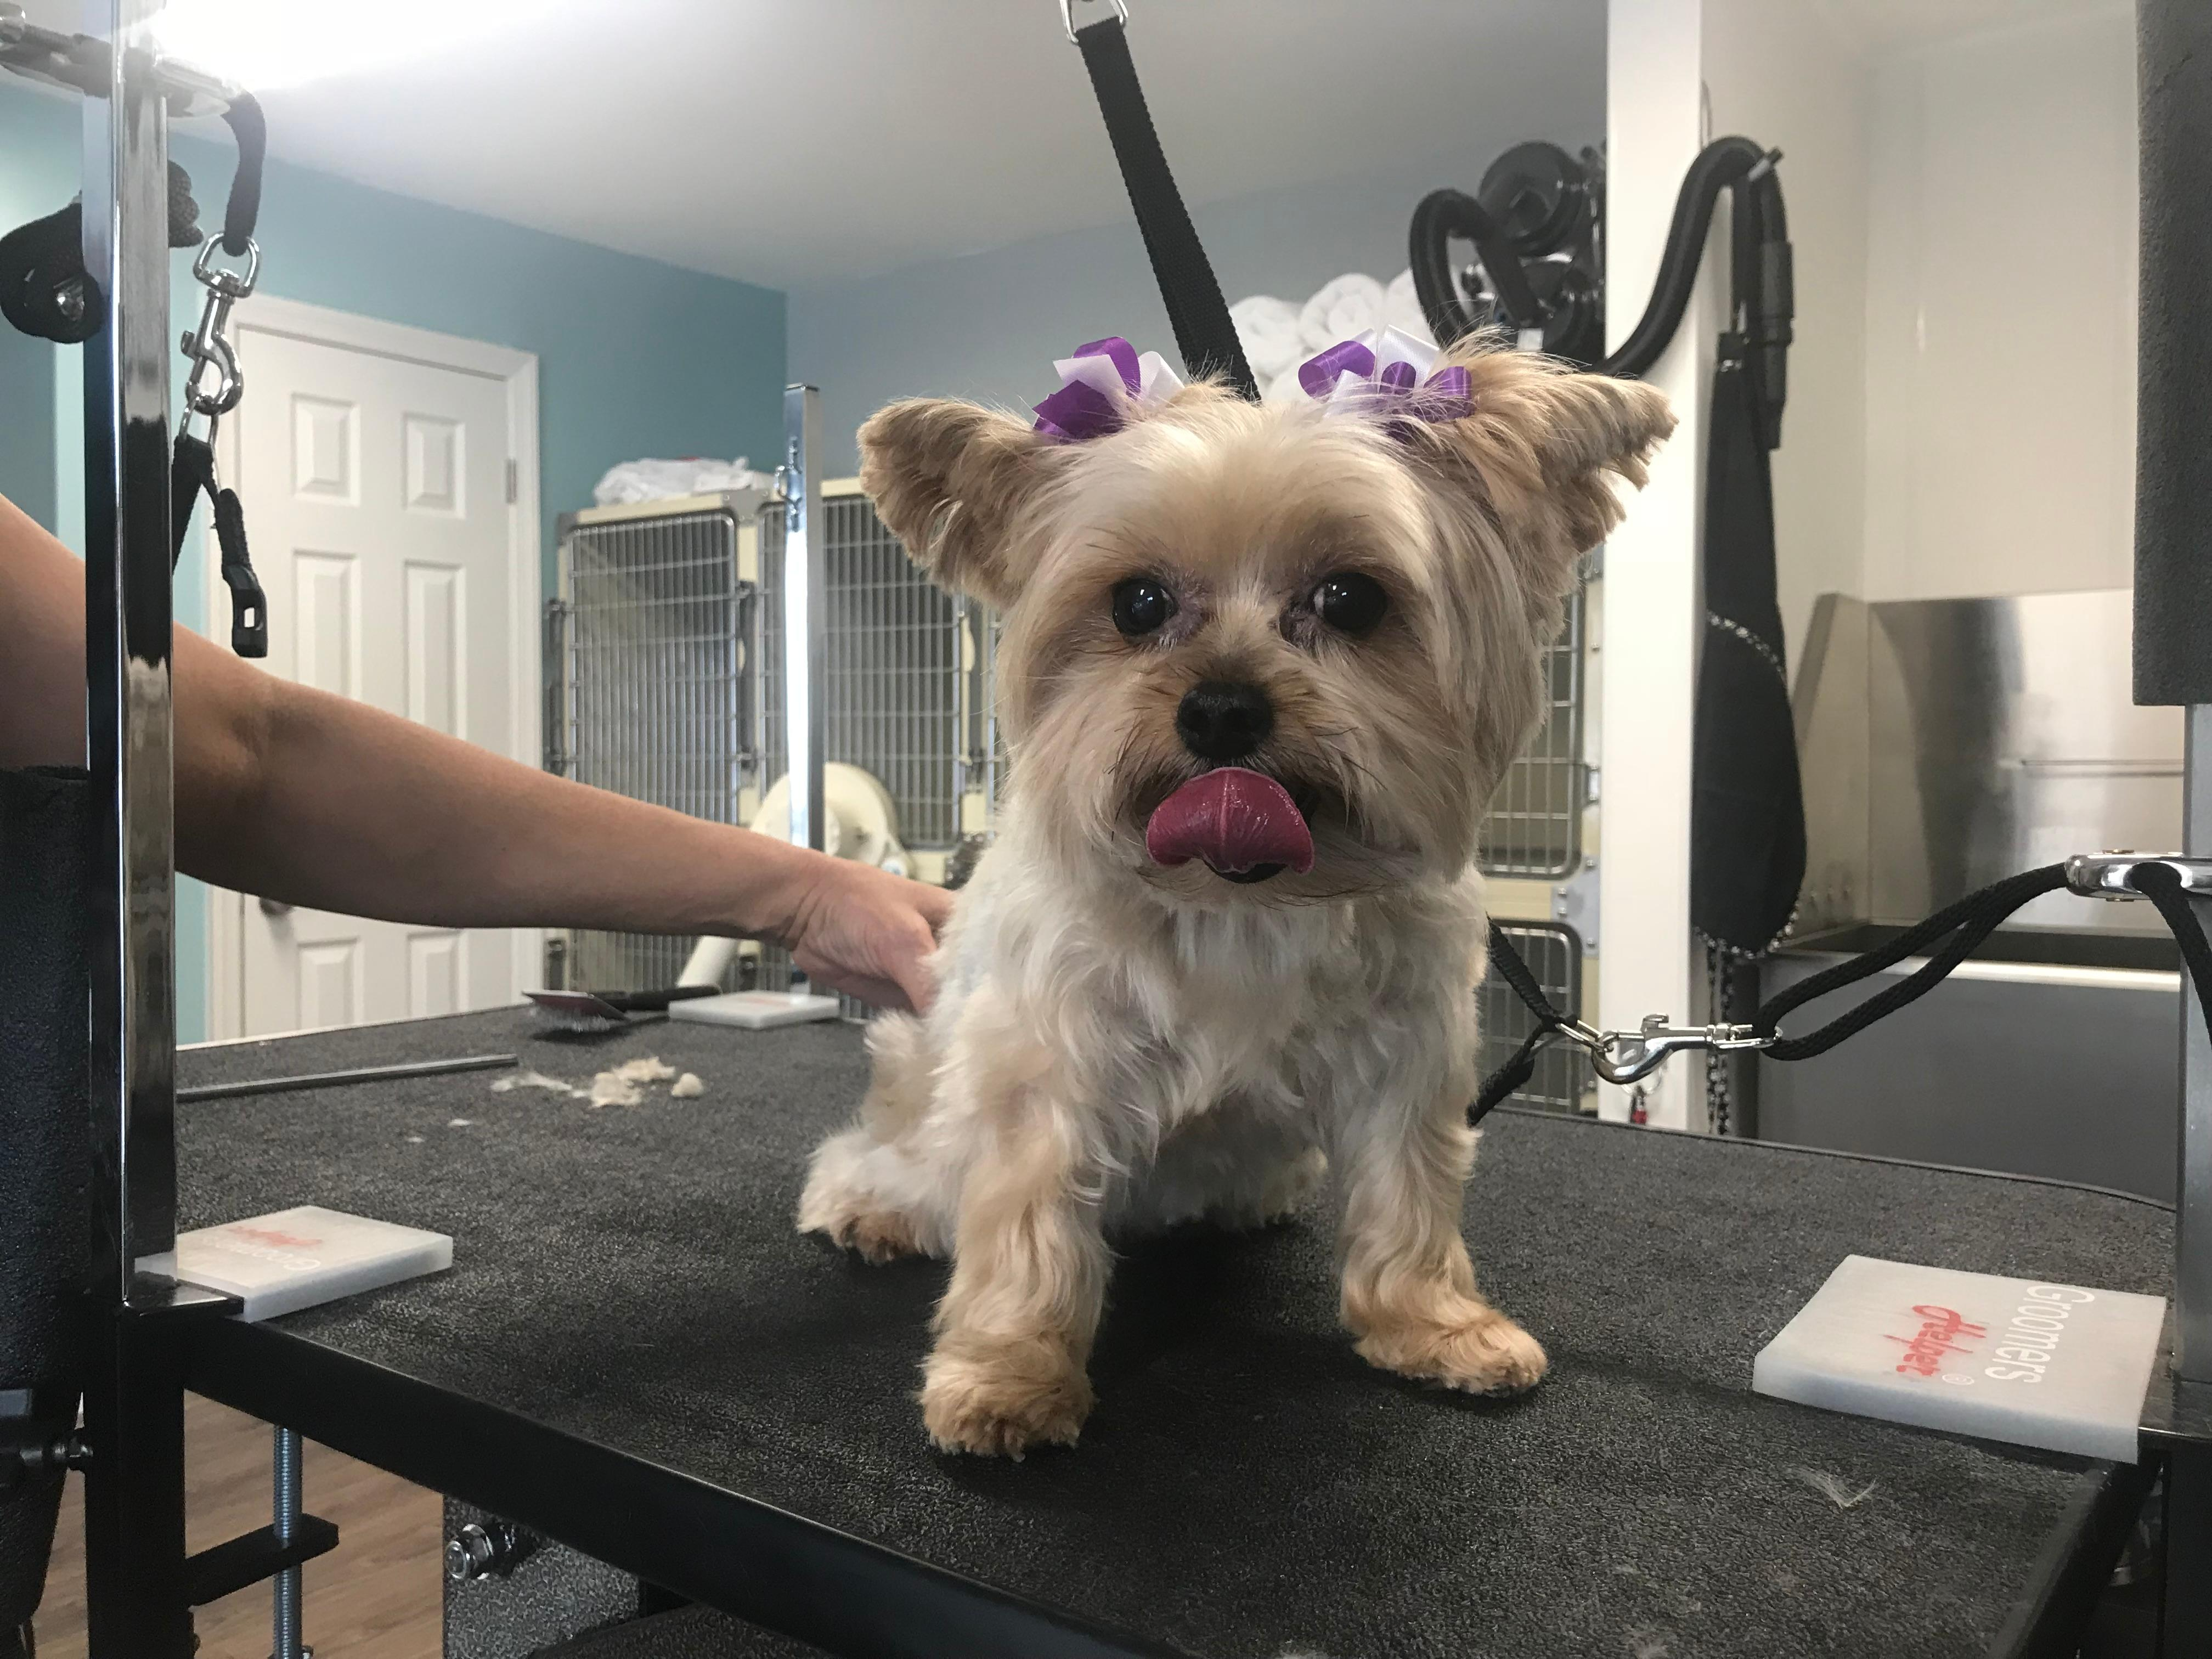 The Room & Groom, Pet Spa & Services image 26